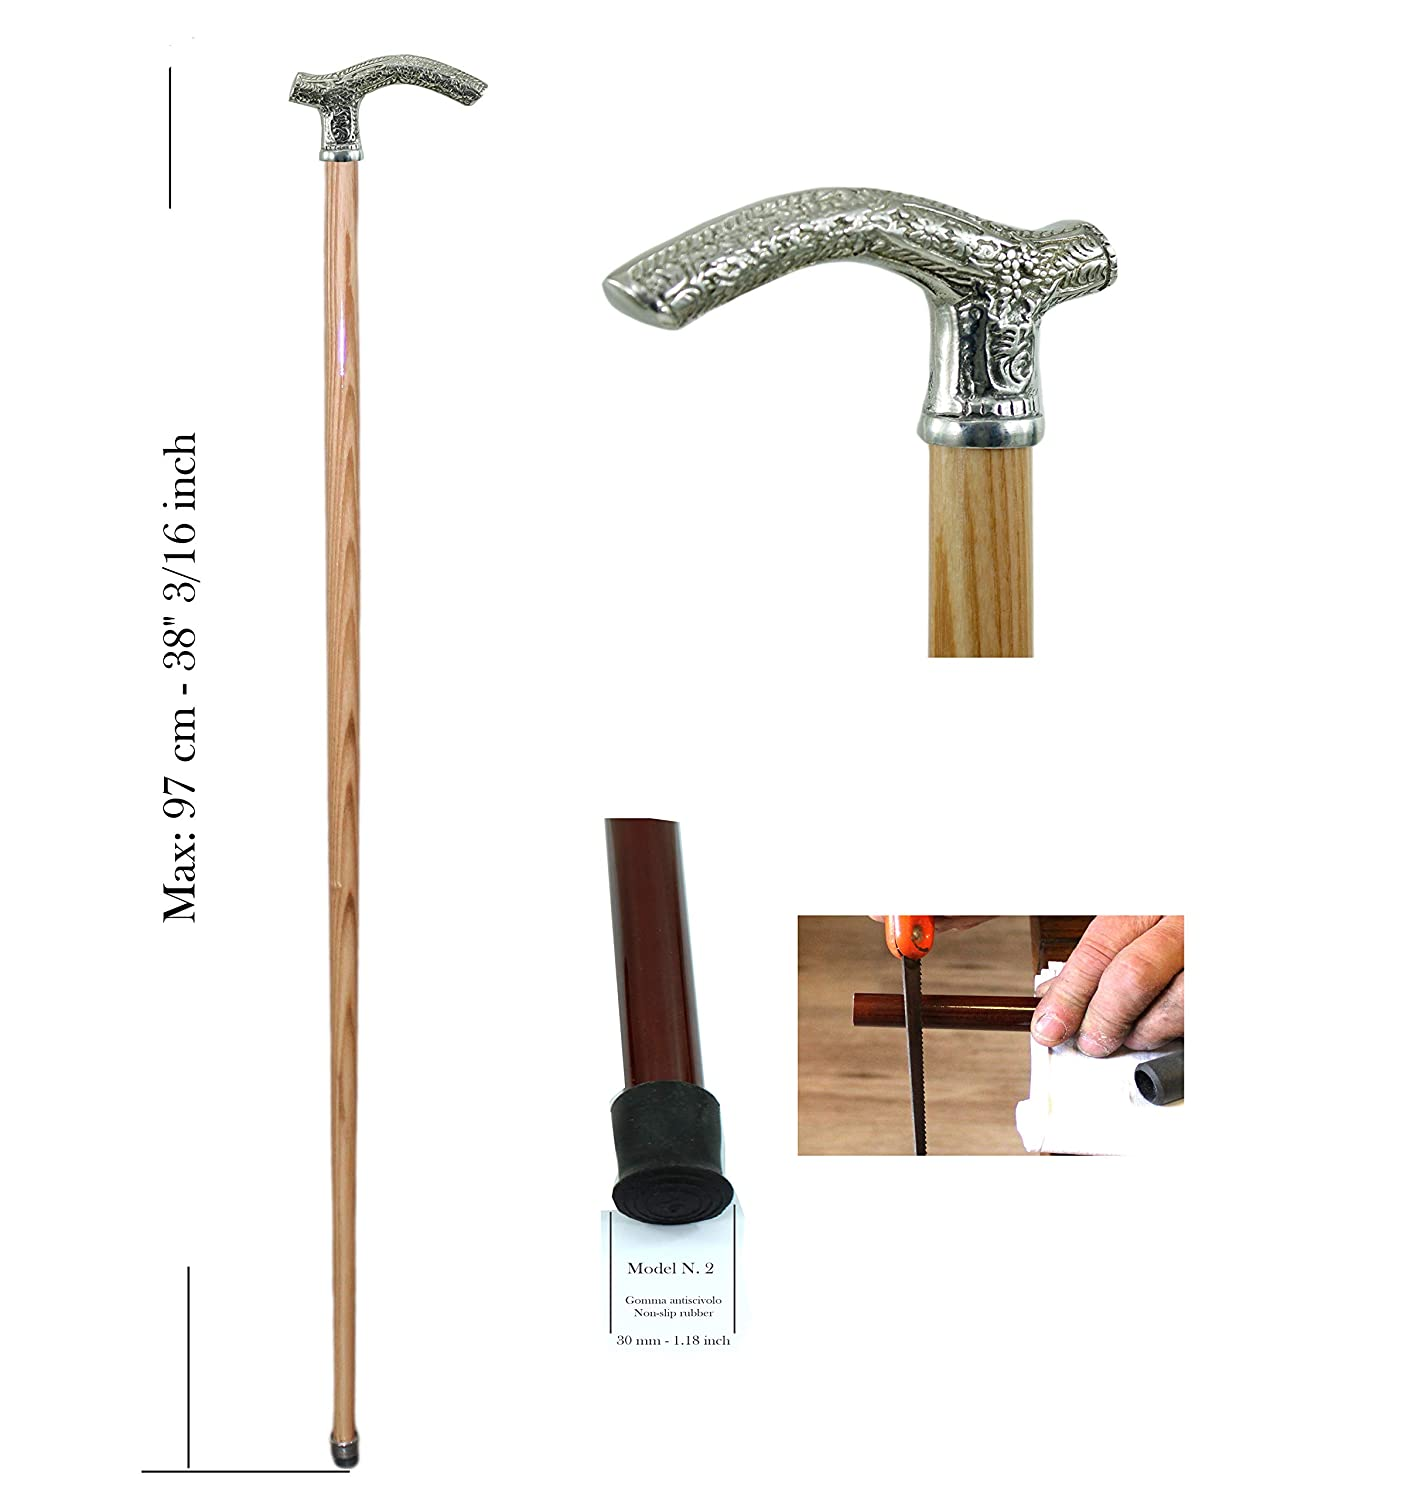 Walking canes and stick Derby Libery pewter beech wood swan 38 for the elderly Cavagnini made in Italy classy model tailor-made for you